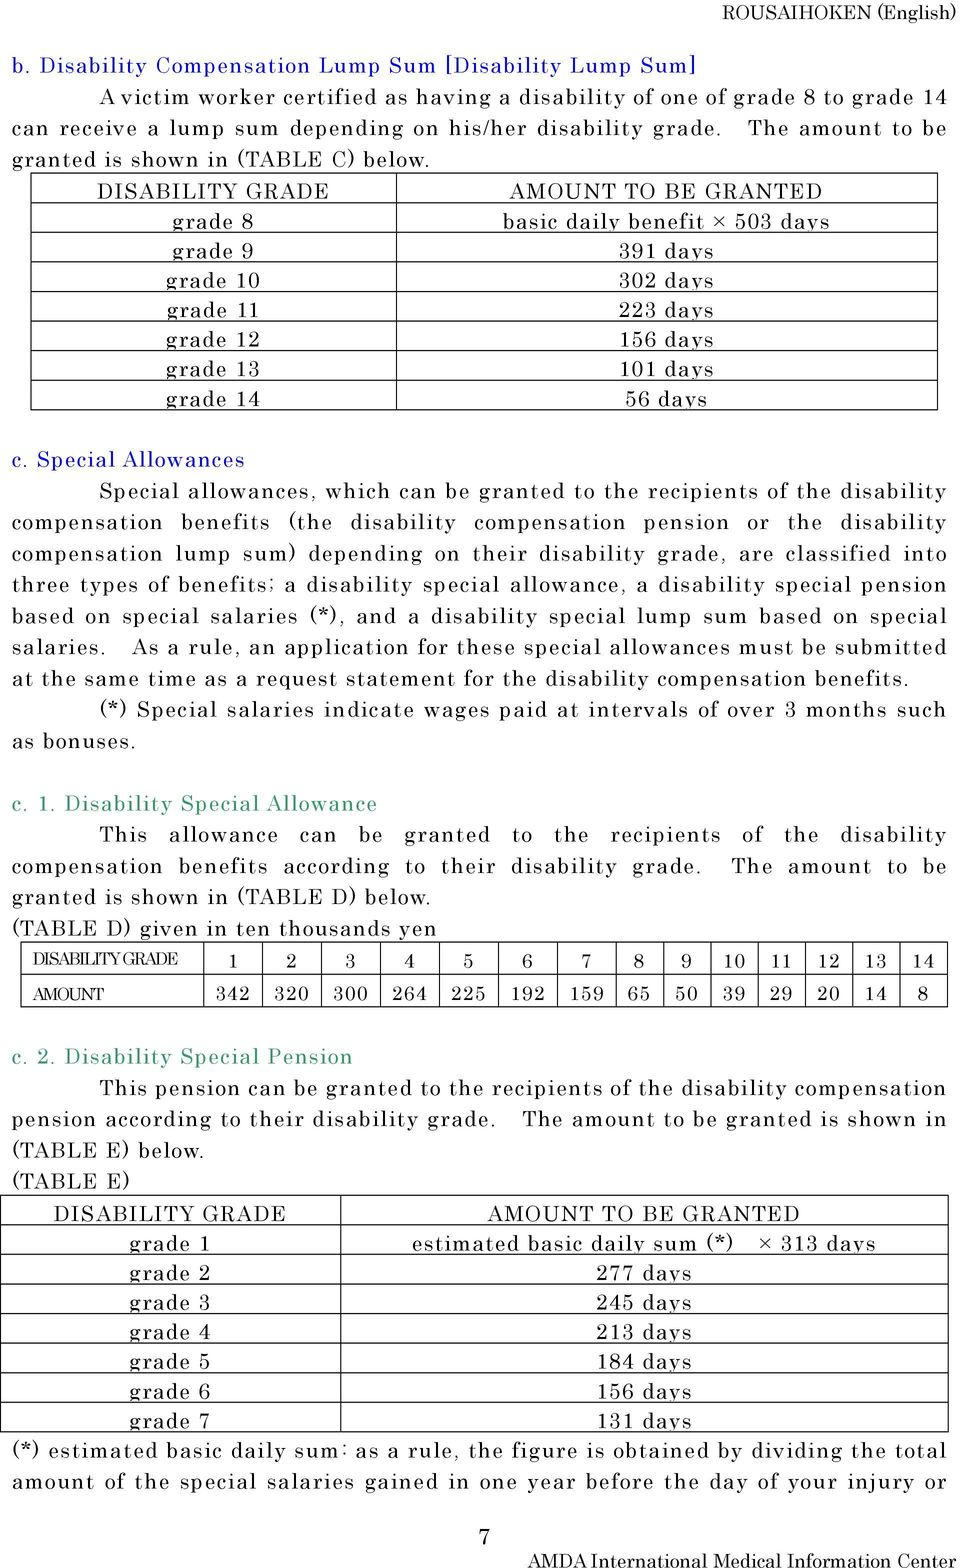 DISABILITY GRADE AMOUNT TO BE GRANTED grade 8 basic daily benefit 503 days grade 9 391 days grade 10 302 days grade 11 223 days grade 12 156 days grade 13 101 days grade 14 56 days c.